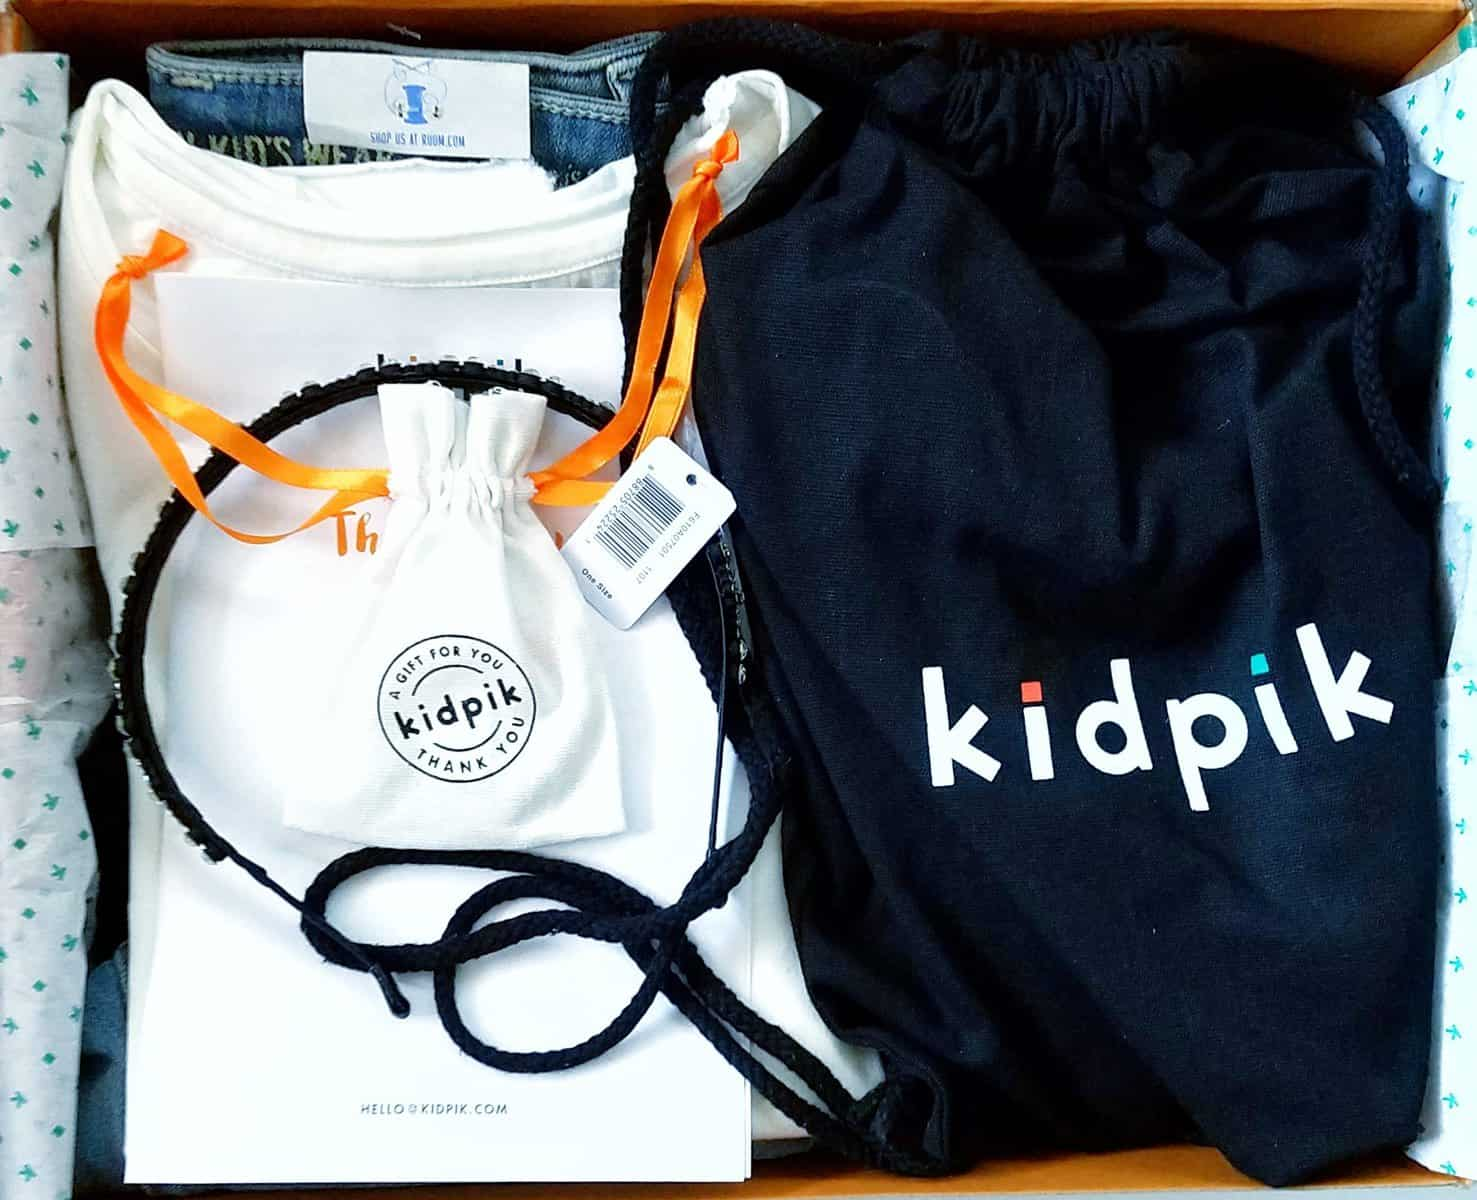 Kidpik December 2016 Review - First Look